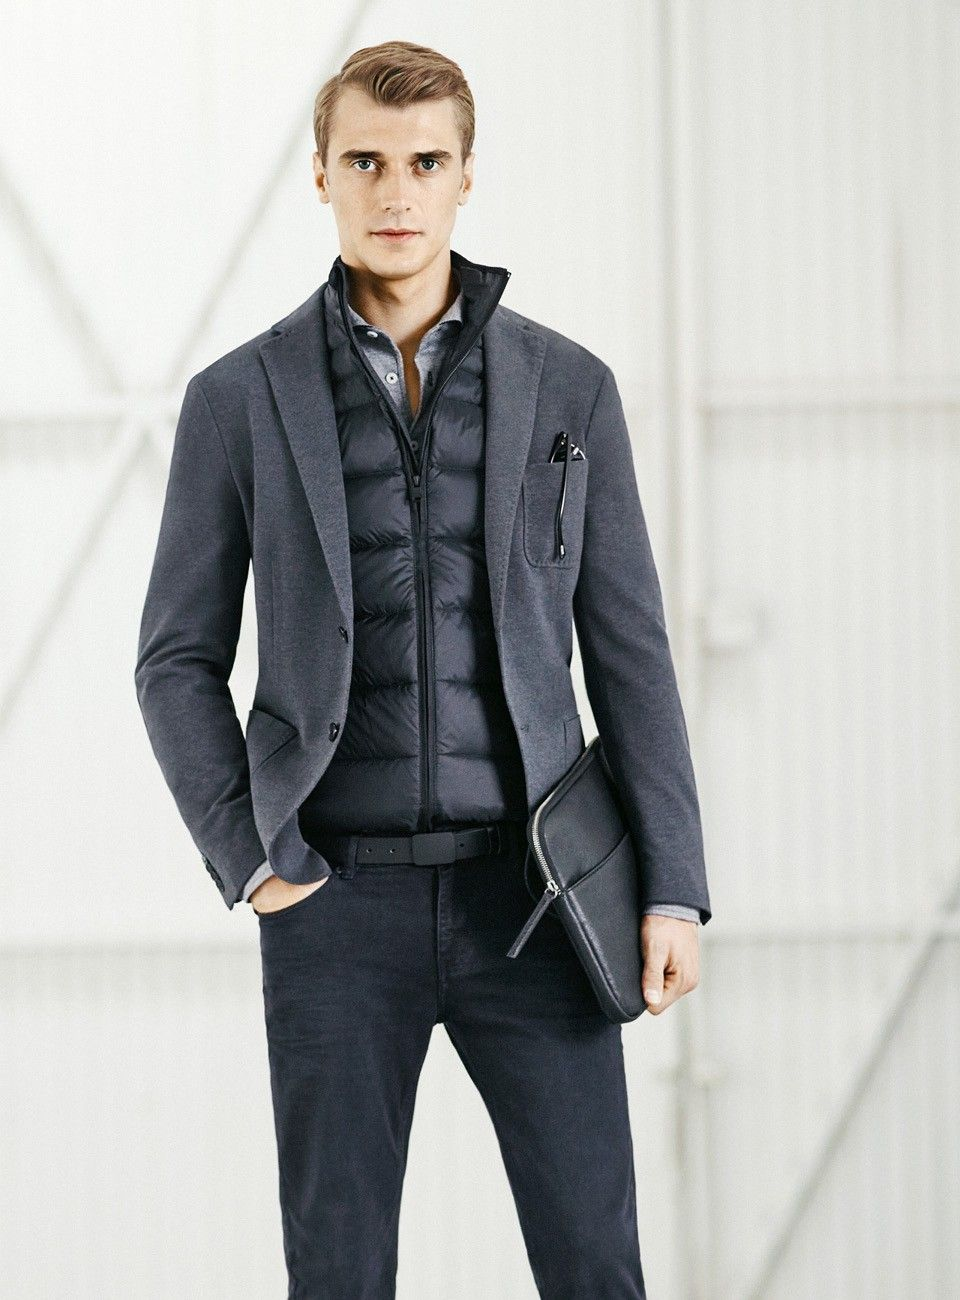 Puffer vest under a suit jacket greydark neutral outfit casual